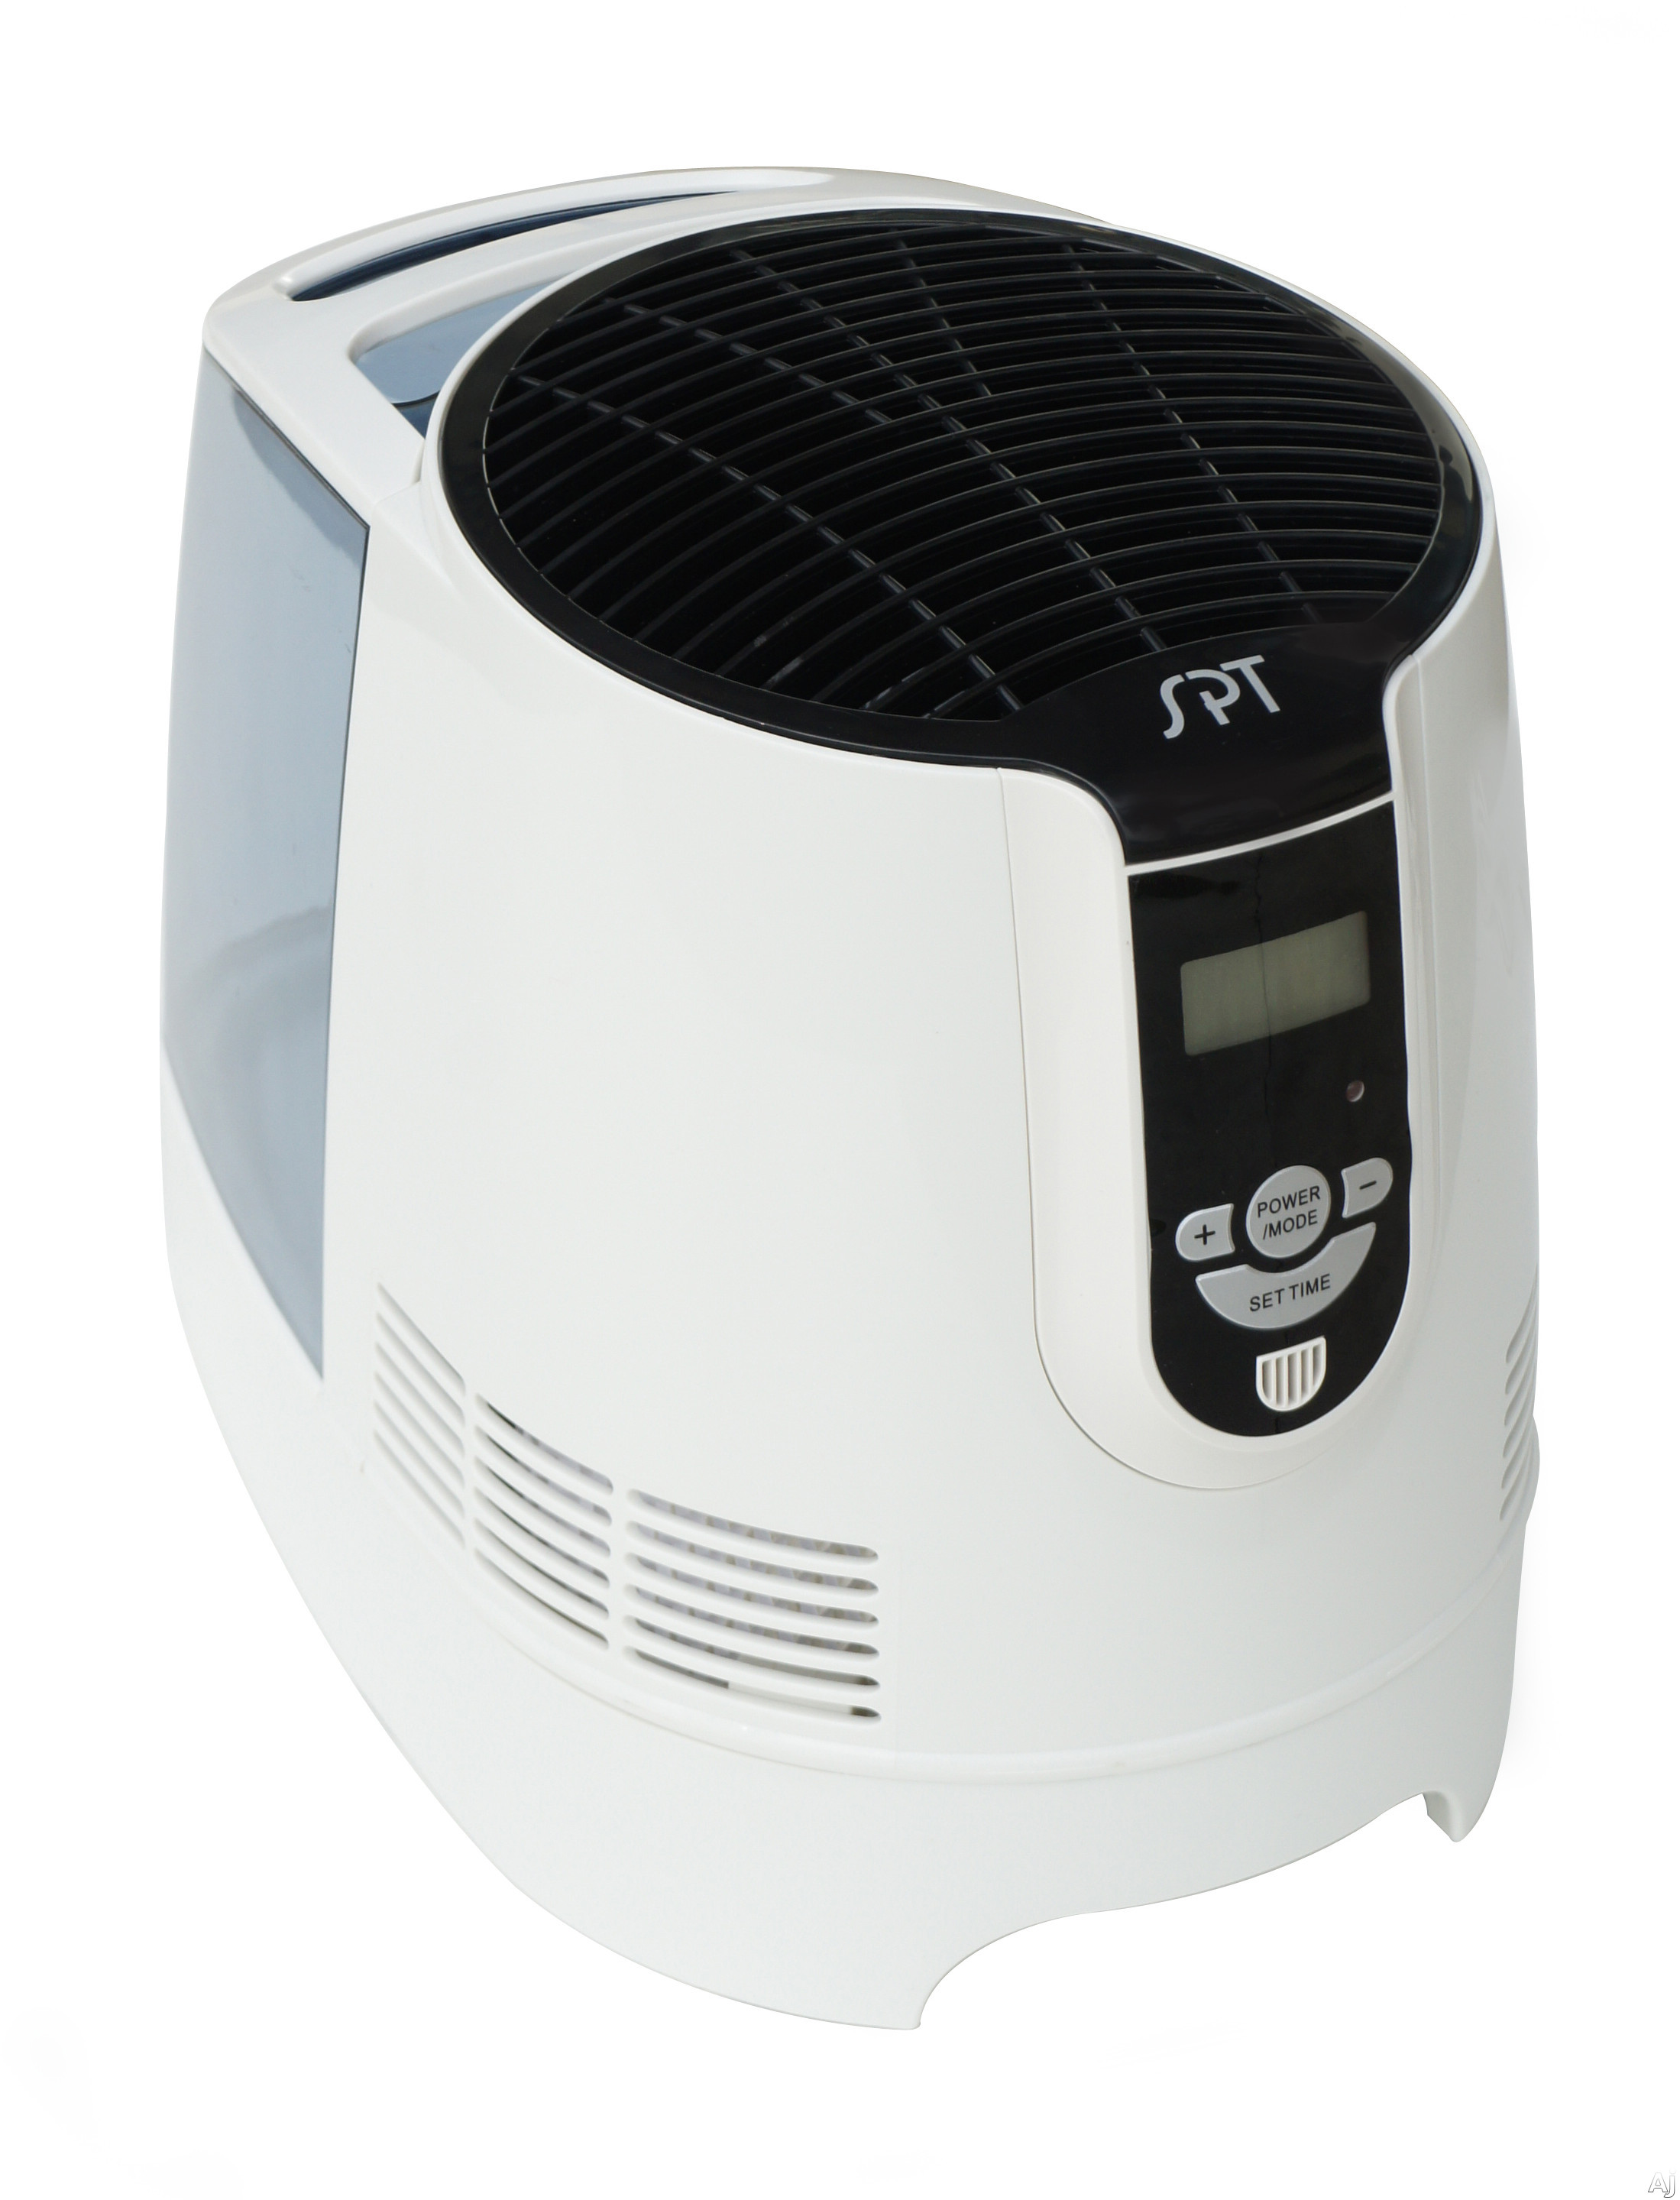 Sunpentown SU9210 Evaporative Air Cooler with Humidifier, 2 Speed Fan, Timer and Digital Humidistat SU9210